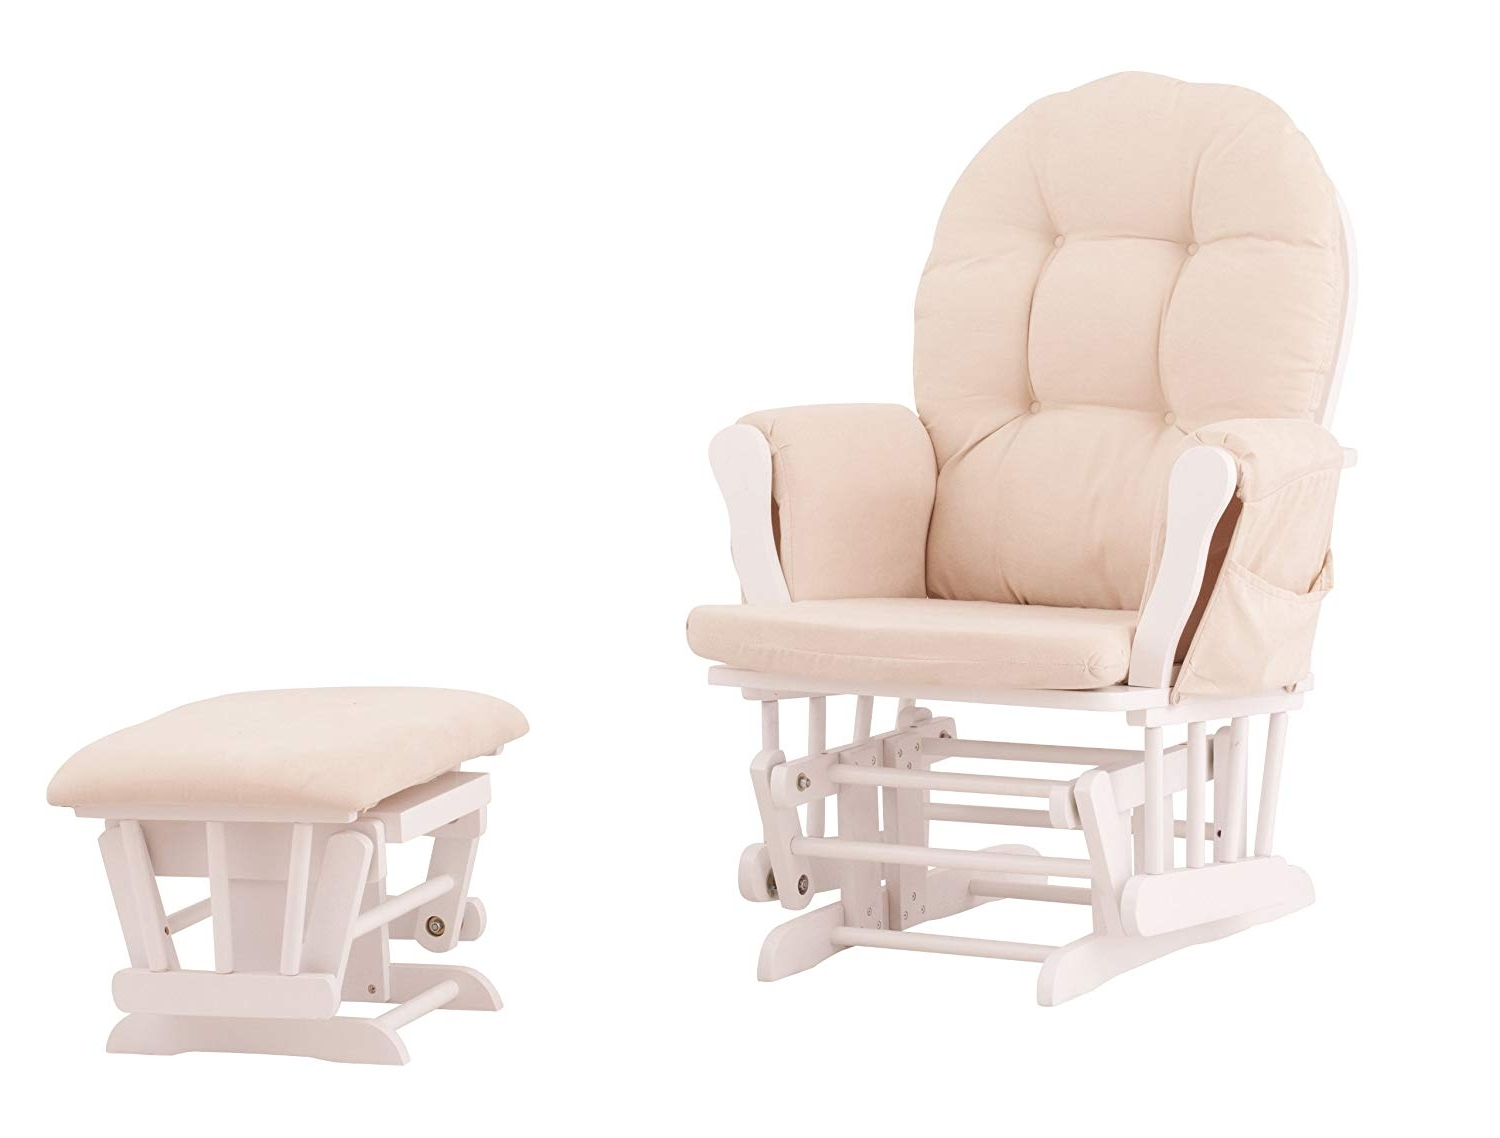 Amazon Rocking Chairs In Famous Amazon: Status Roma Glider And Nursing Ottoman, White/beige: Baby (View 1 of 15)